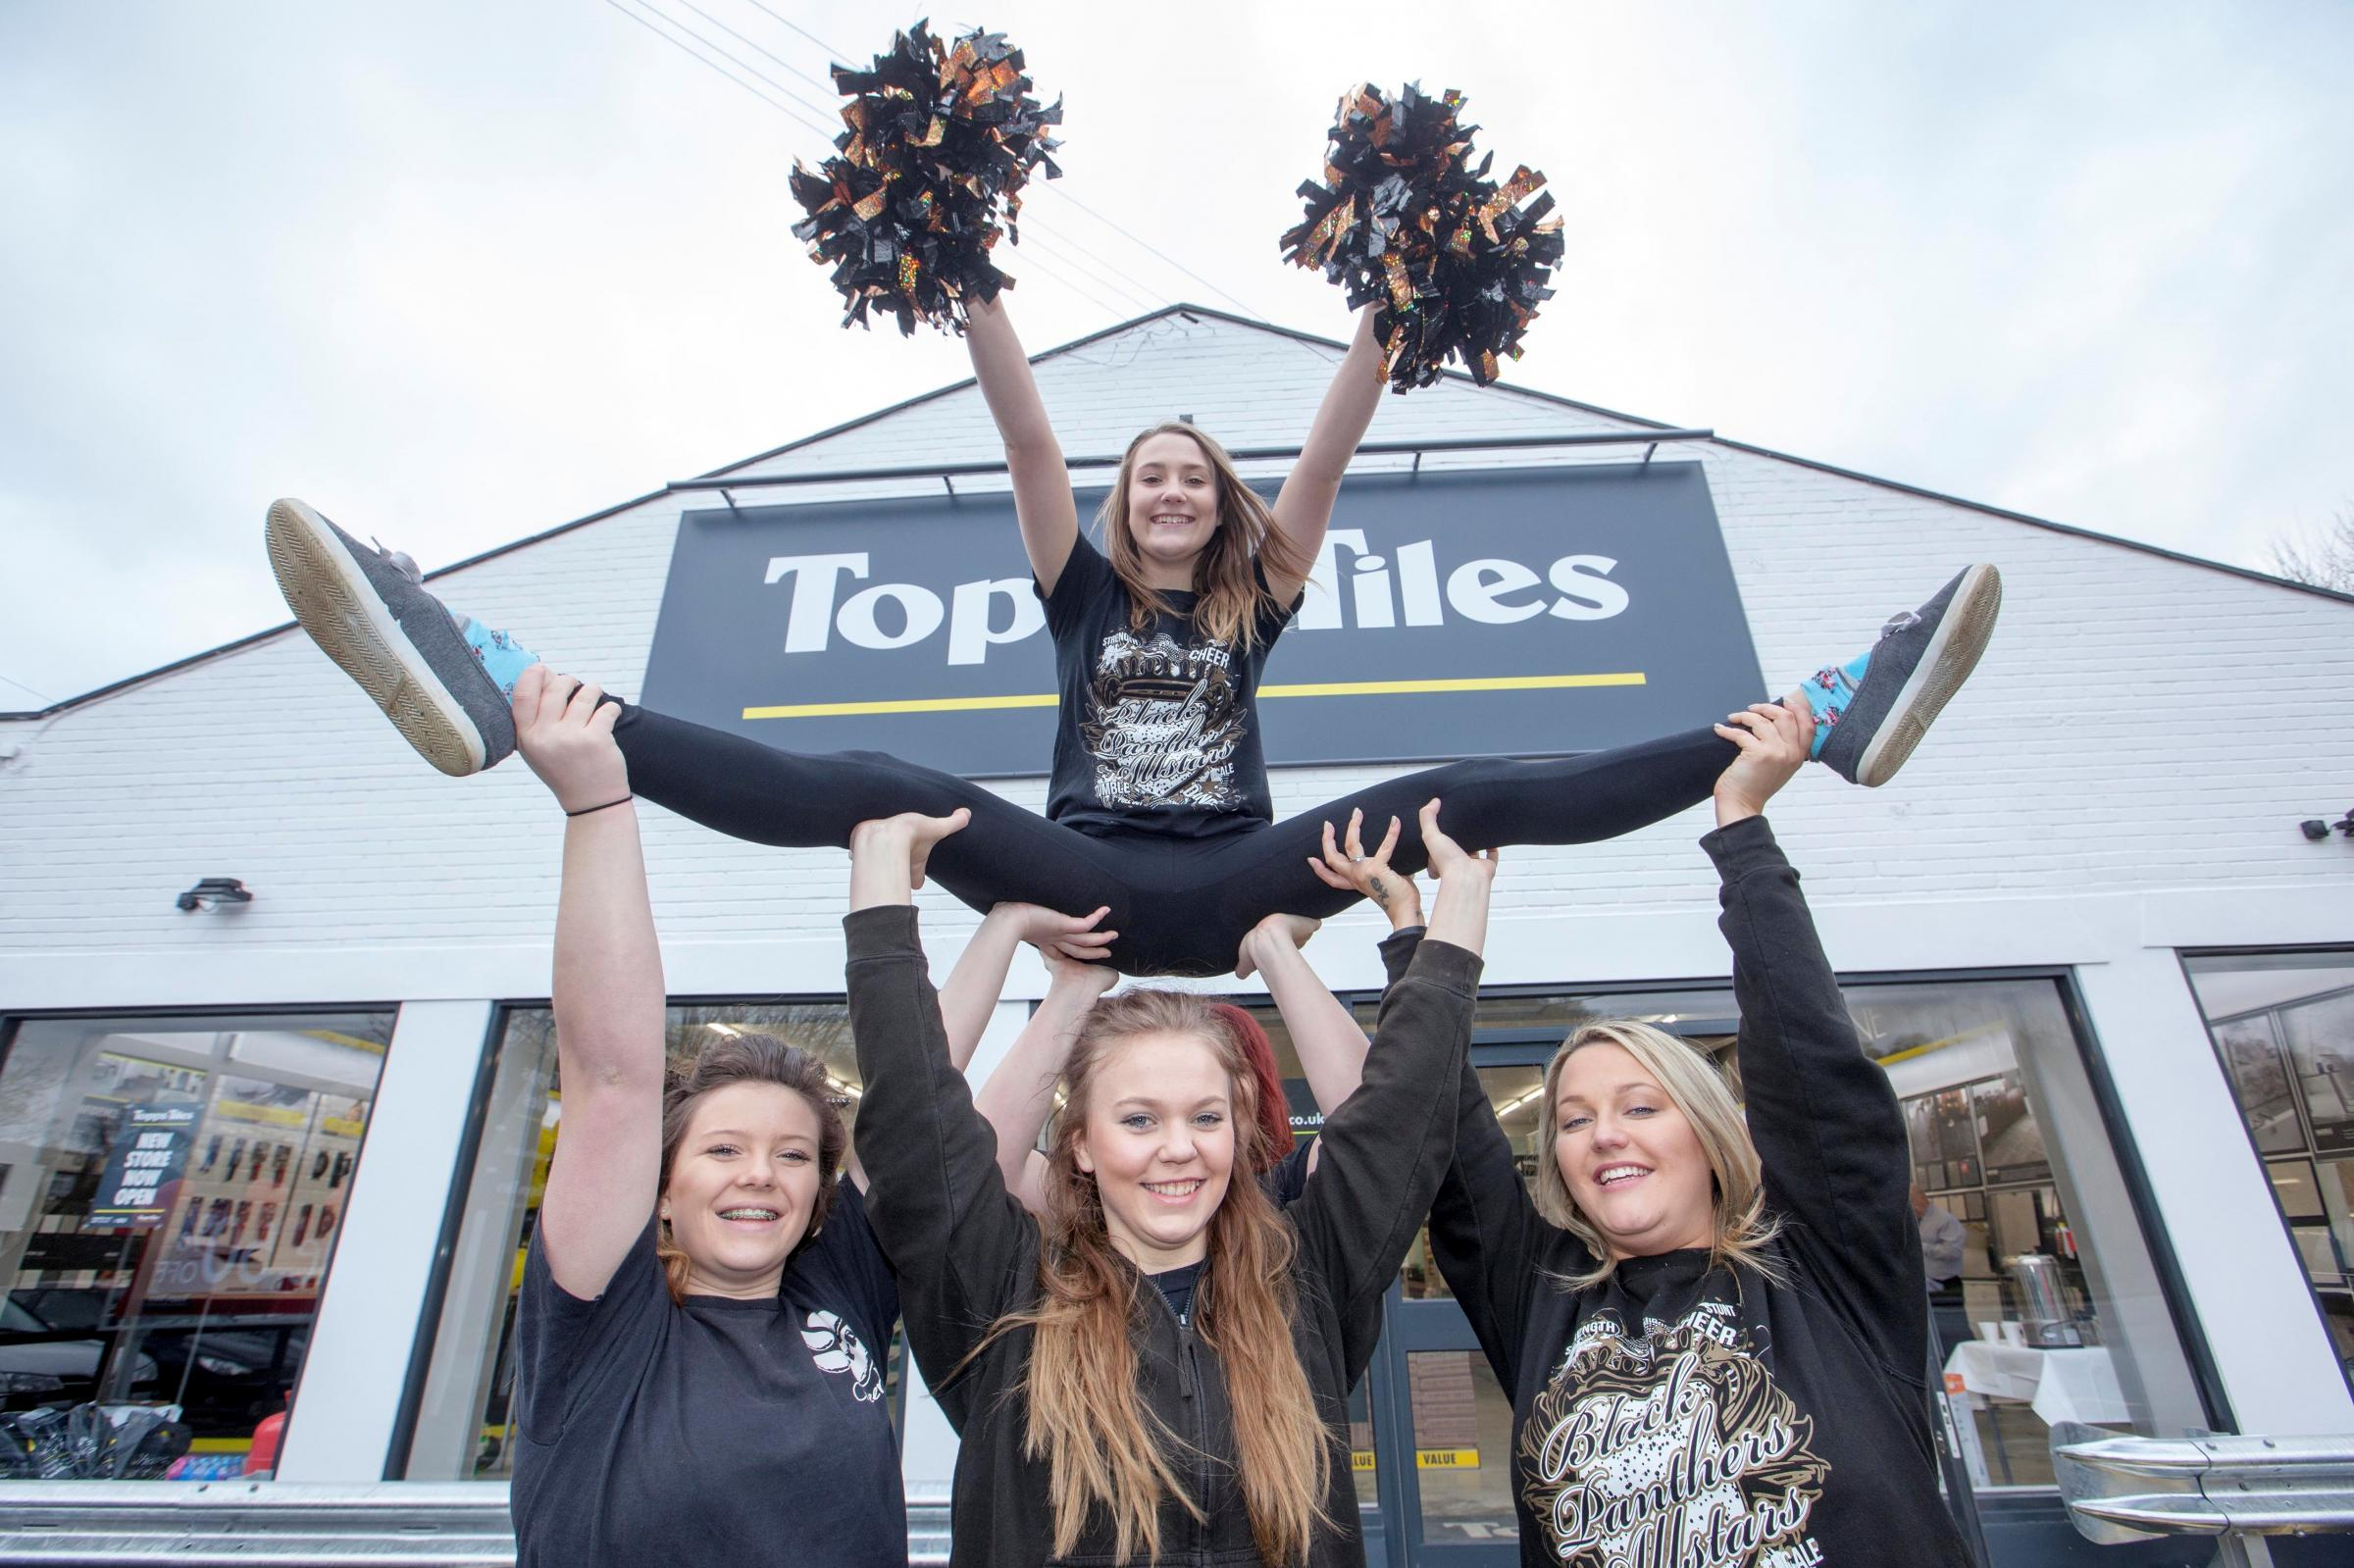 Spirits raised high at Topps Tiles